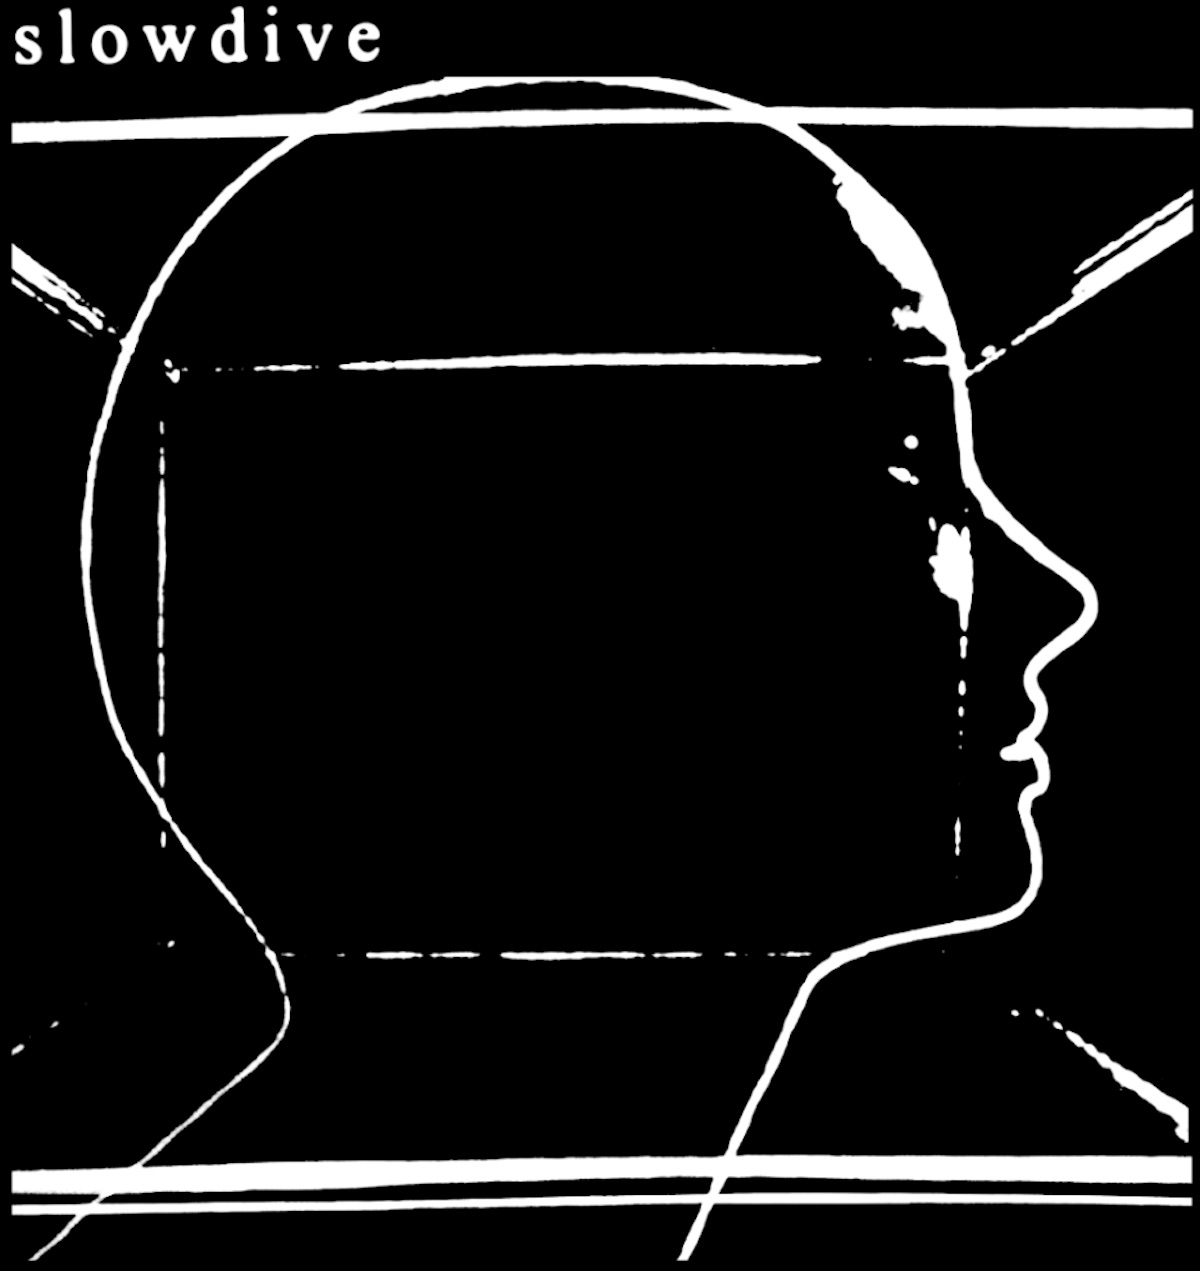 Slowdive front cover